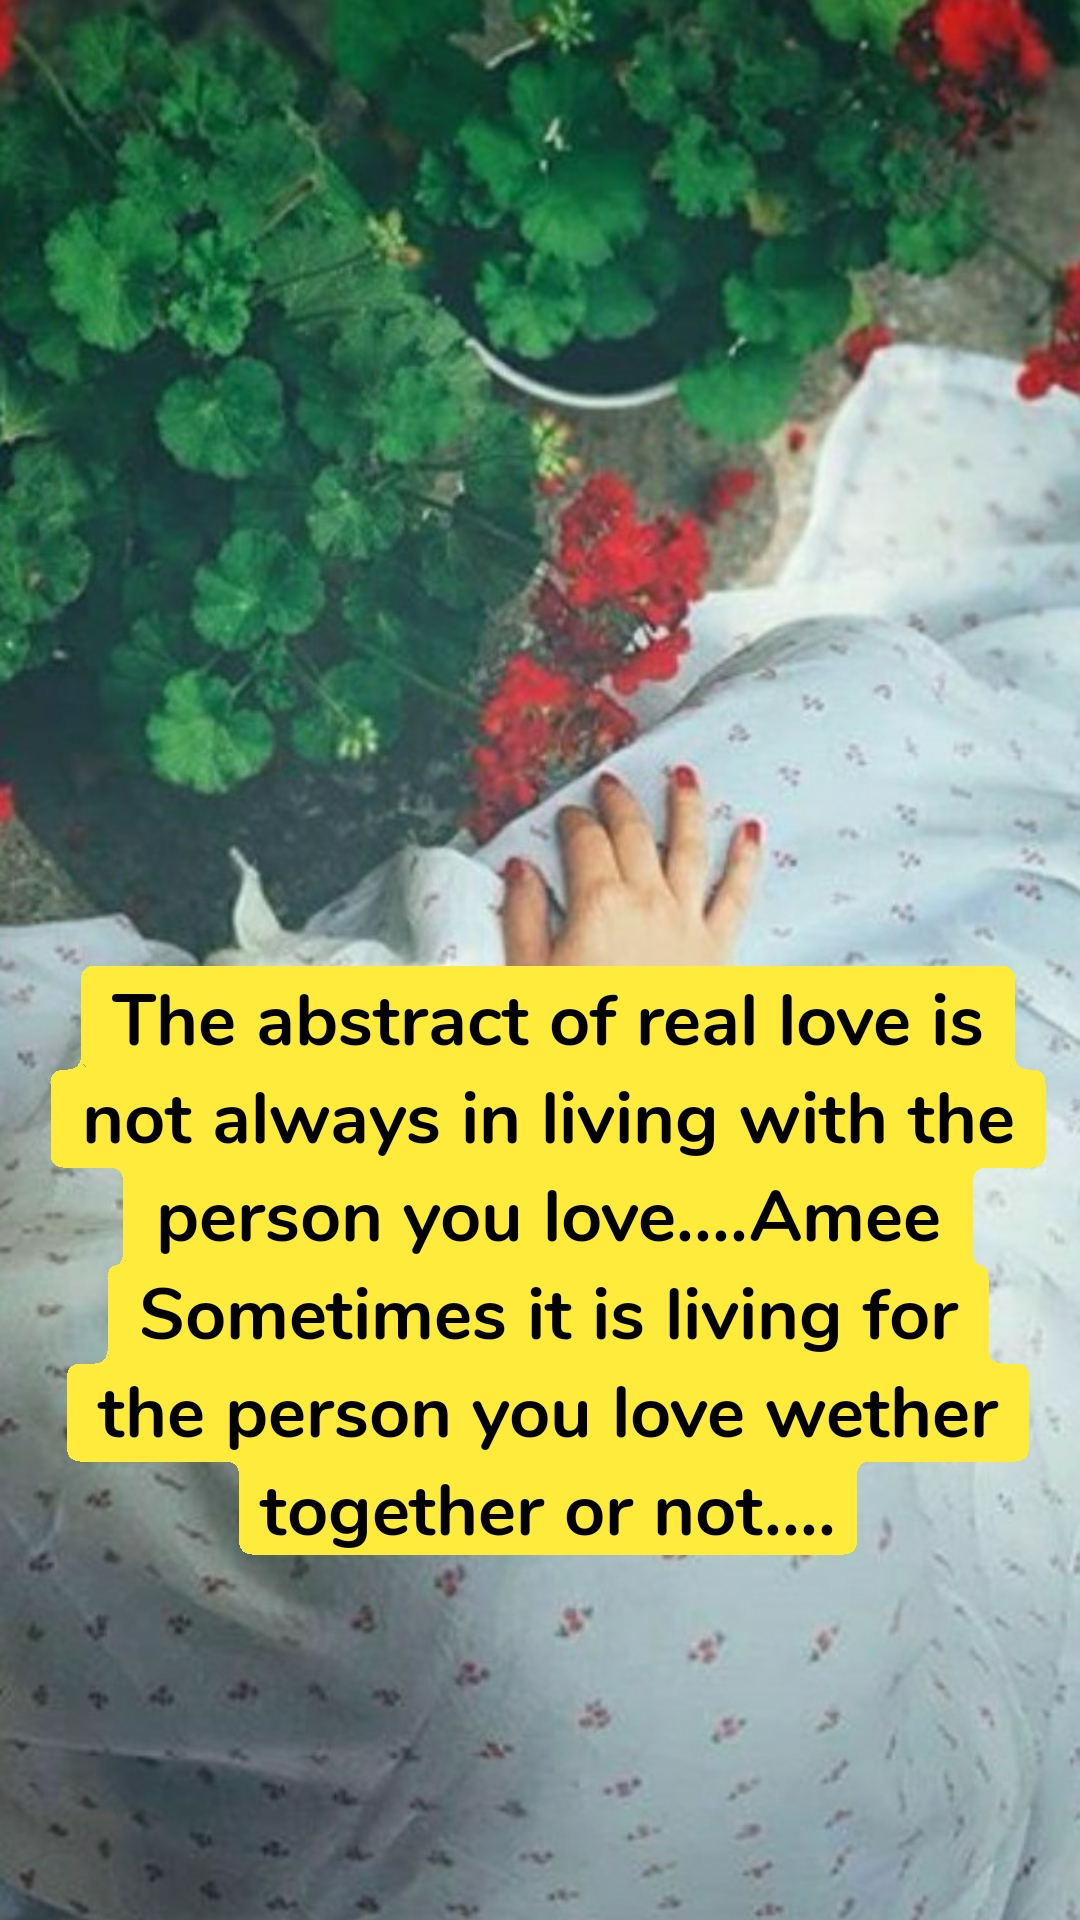 The abstract of real love is not always in living with the person you love....Amee Sometimes it is living for the person you love wether together or not....